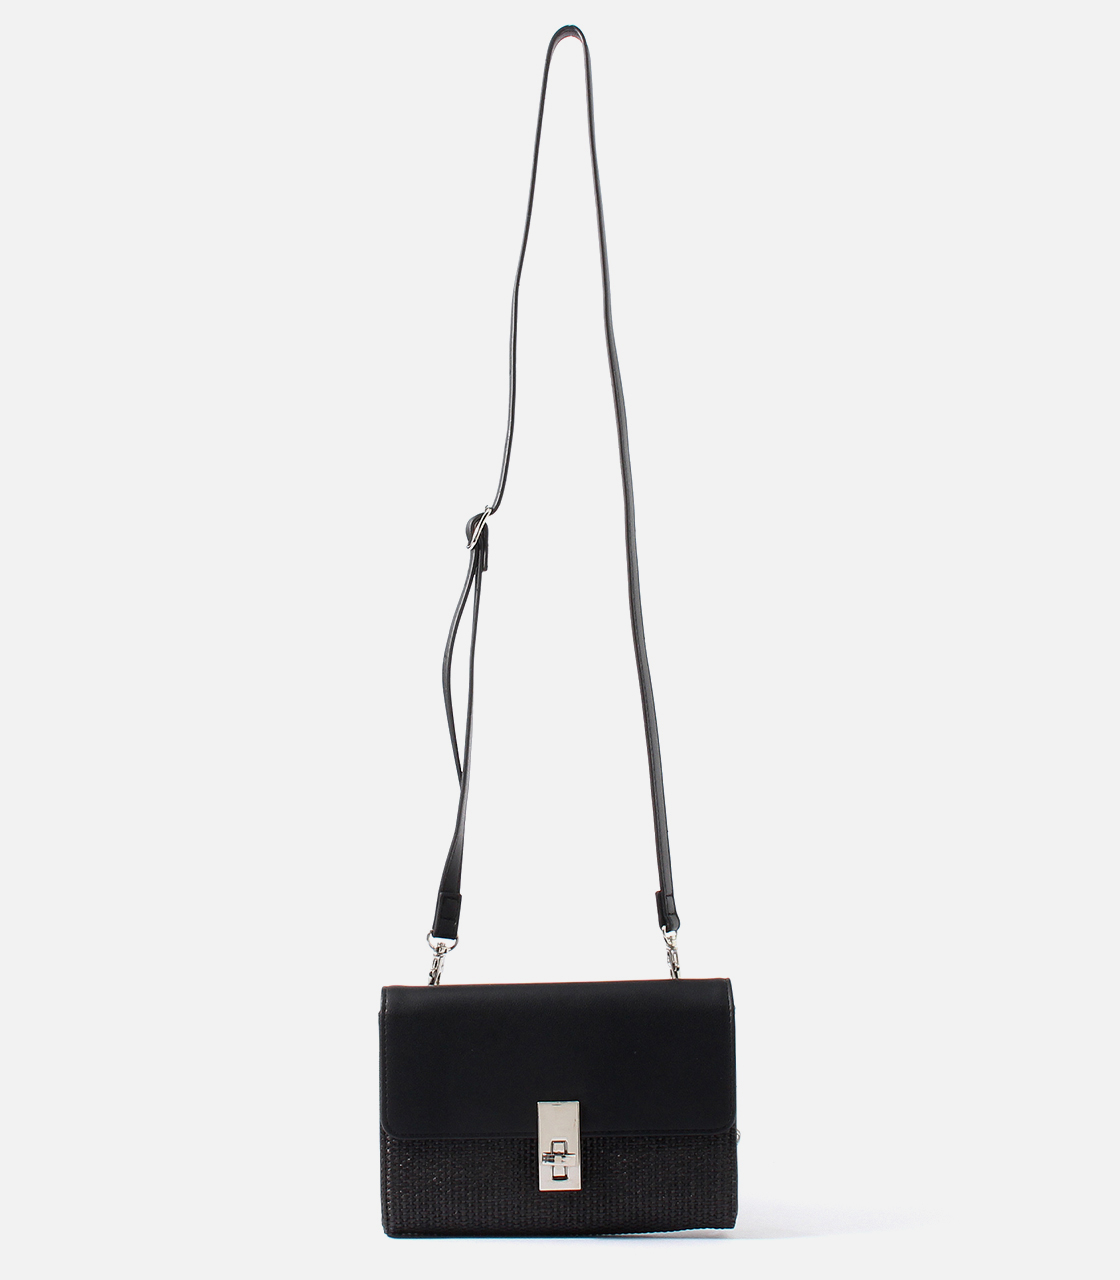 【AZUL BY MOUSSY】PAPER WALLET SHOULDER BAG 詳細画像 BLK 1